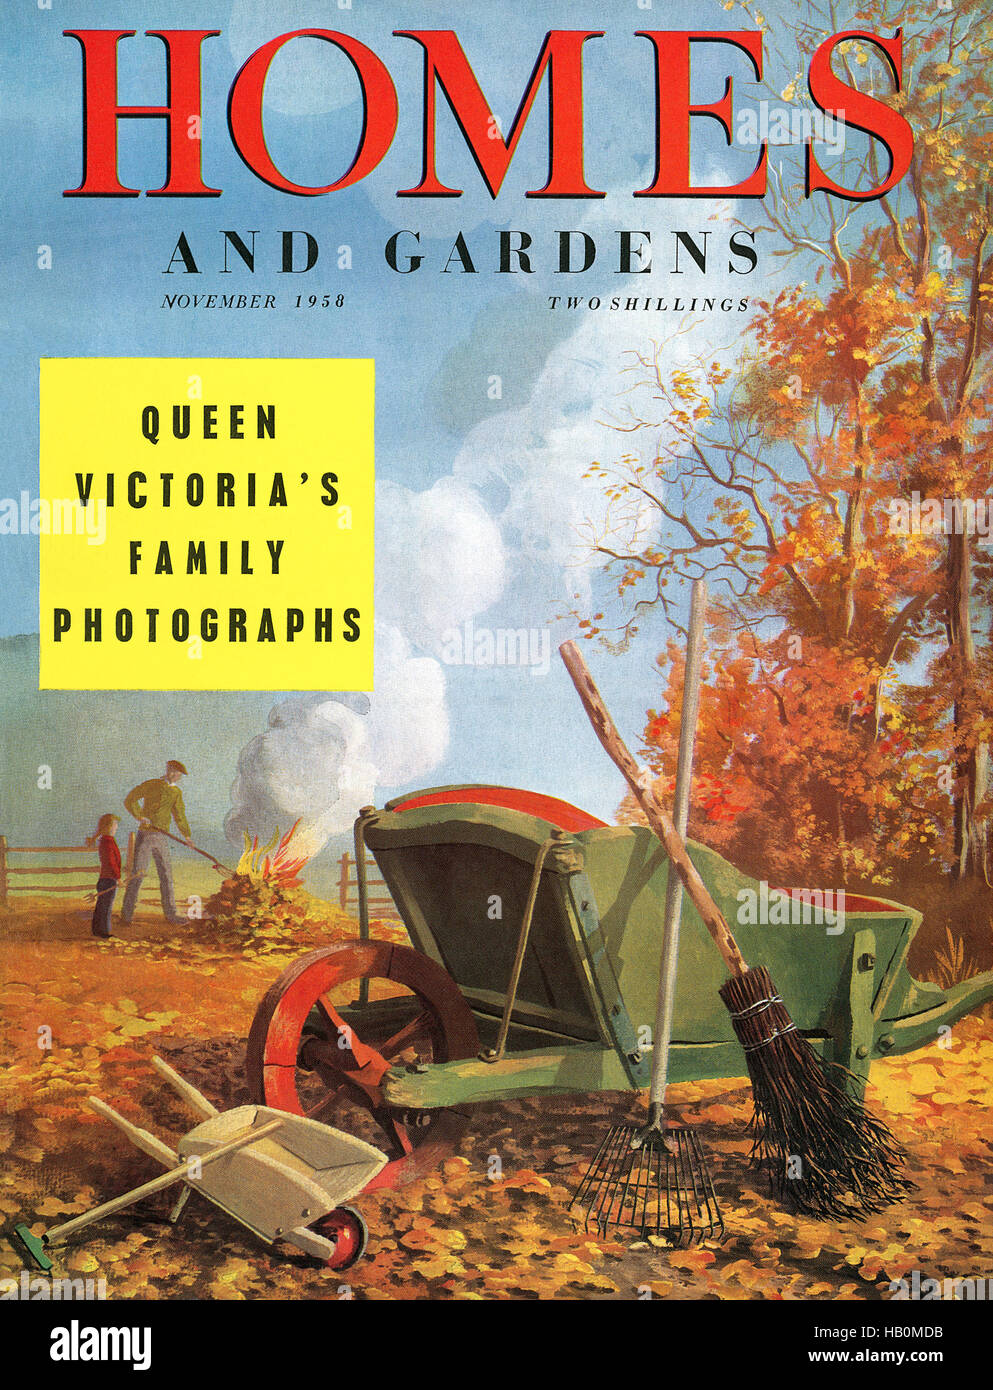 Front cover of Homes And Gardens magazine for November 1958 - Stock Image